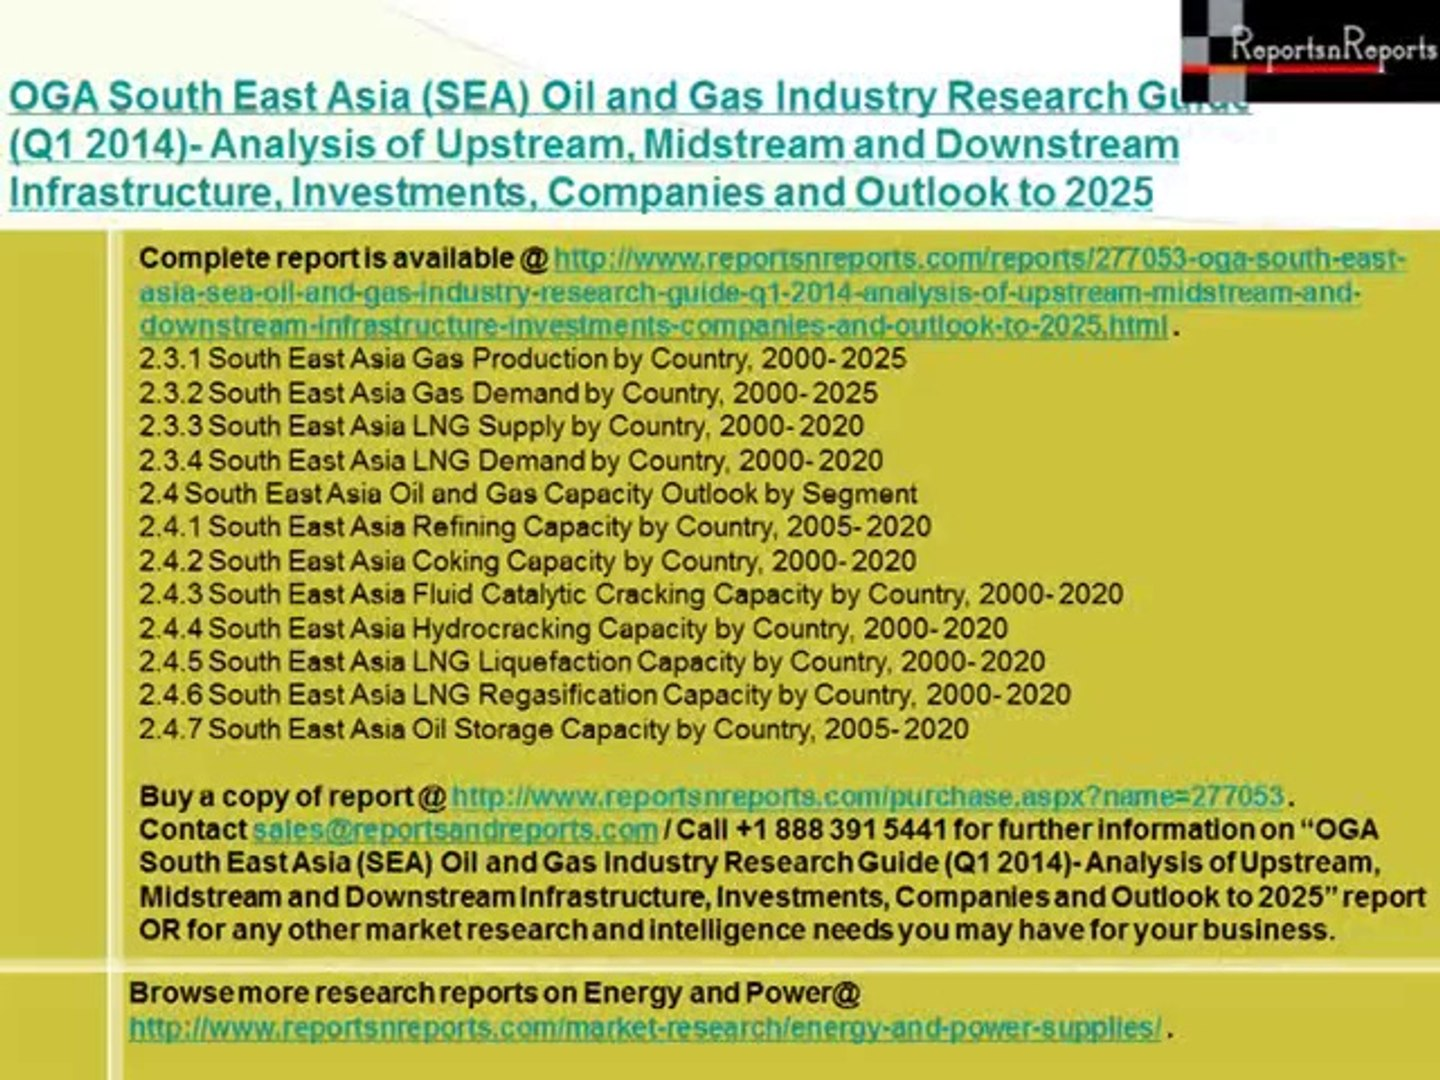 OGA South East Asia (SEA) Oil and Gas Industry Research Guide (Q1 2014)